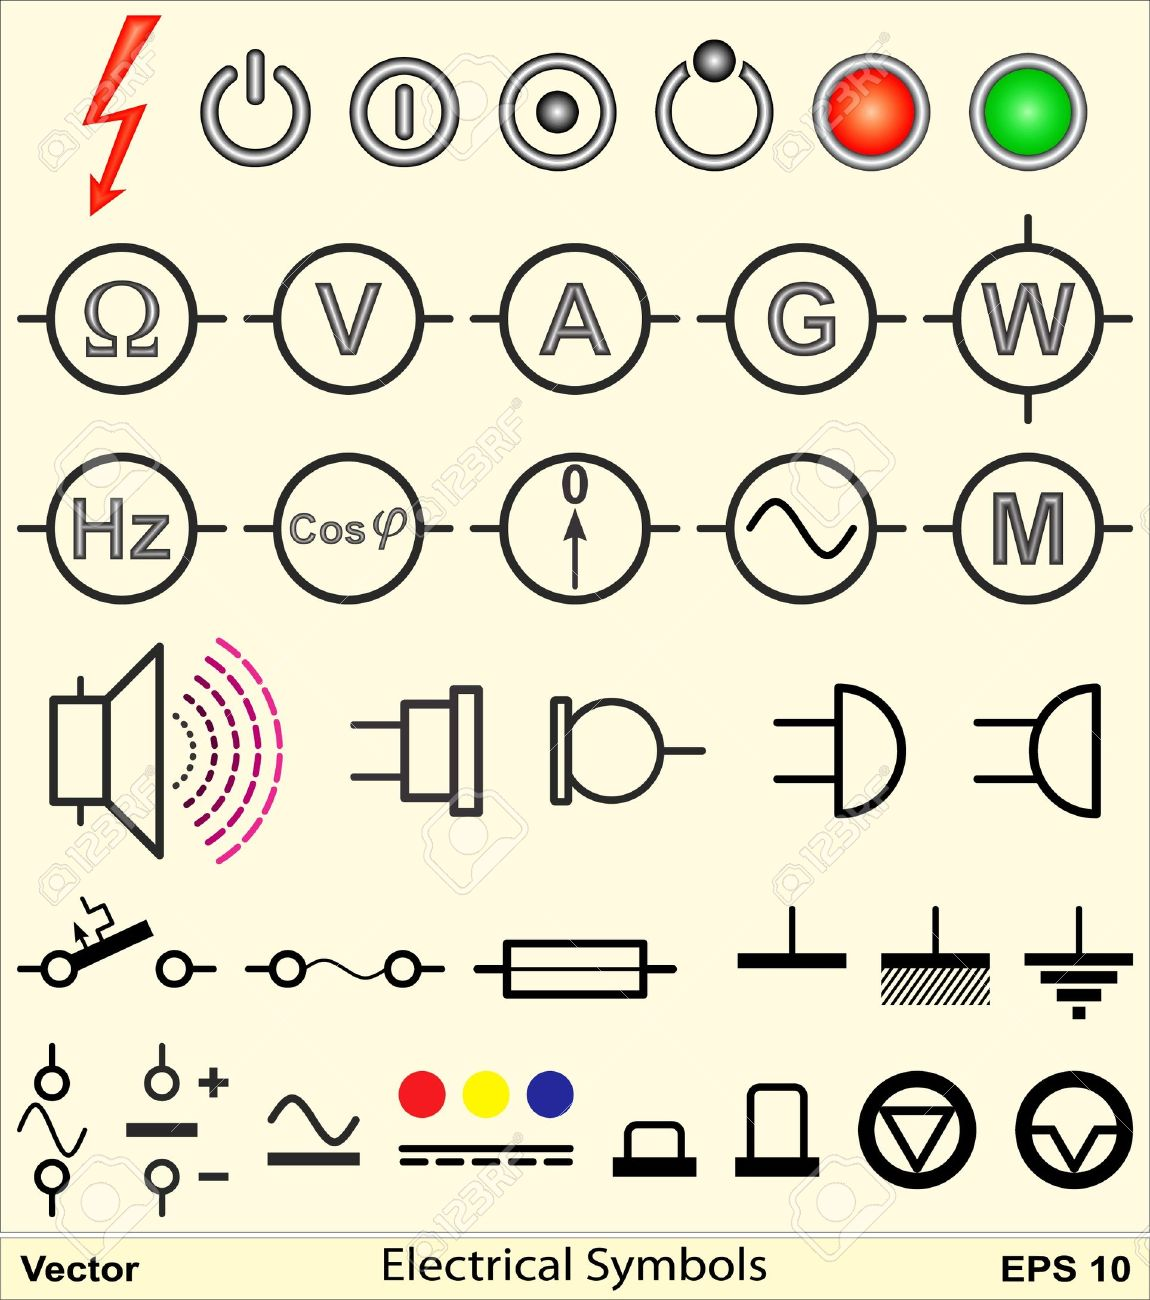 Electrical Symbols Royalty Free Cliparts, Vectors, And Stock ...